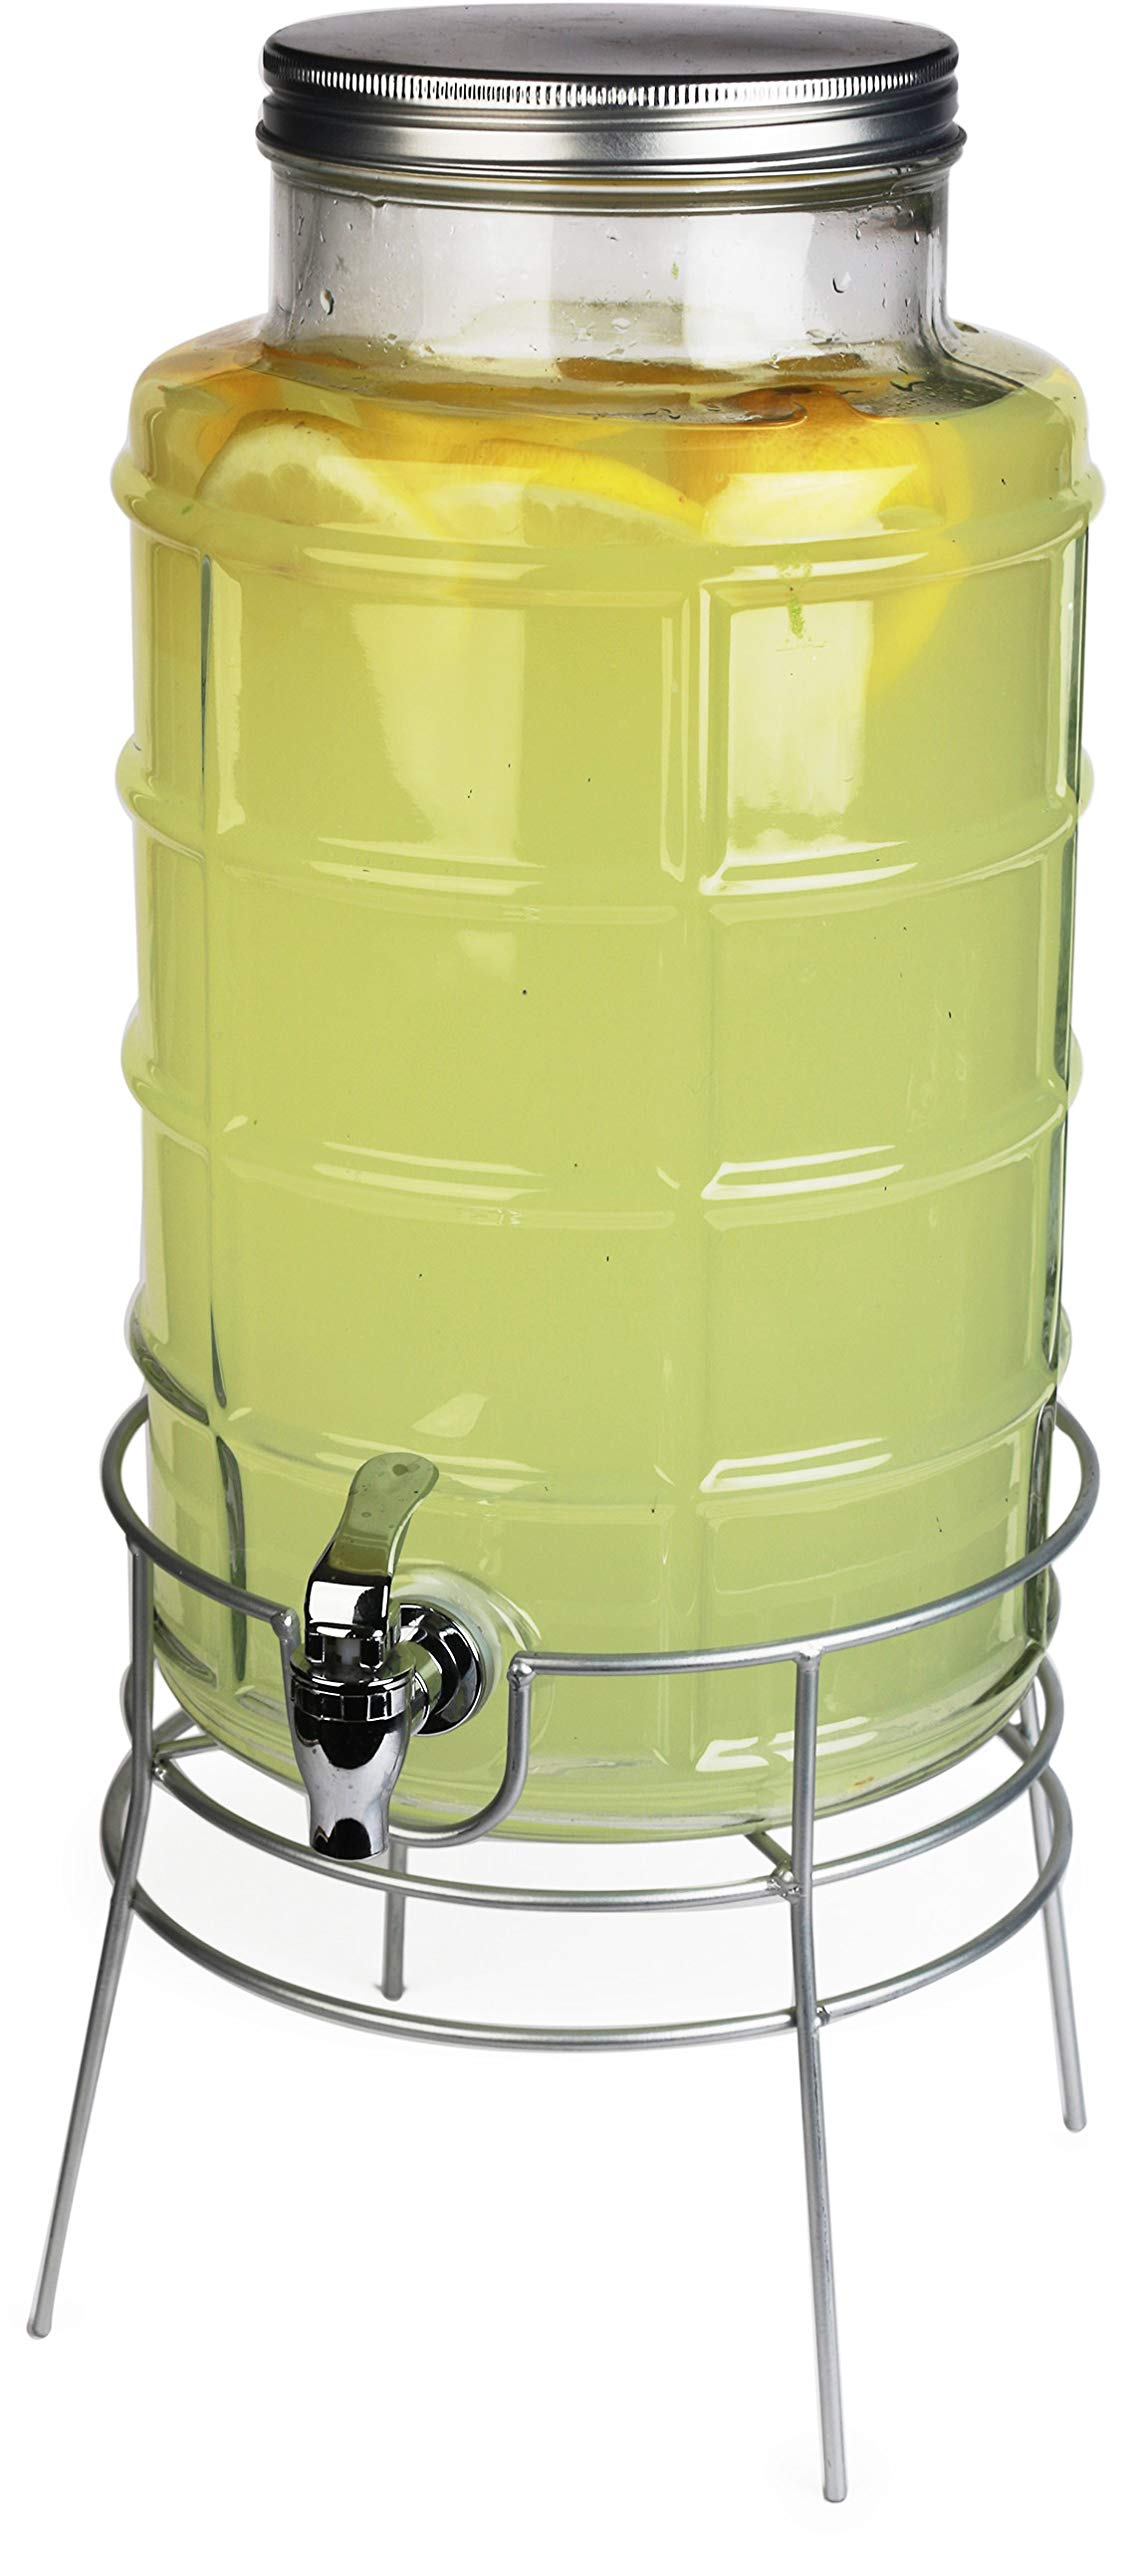 Circleware Newton Creek Glass Beverage Dispenser with Metal Stand and Lid, Entertainment Kitchen Glassware Drink Pitcher for Water, Juice, Wine, Kombucha & Cold Drinks, Huge 2.2 Gallon, Clear by Circleware